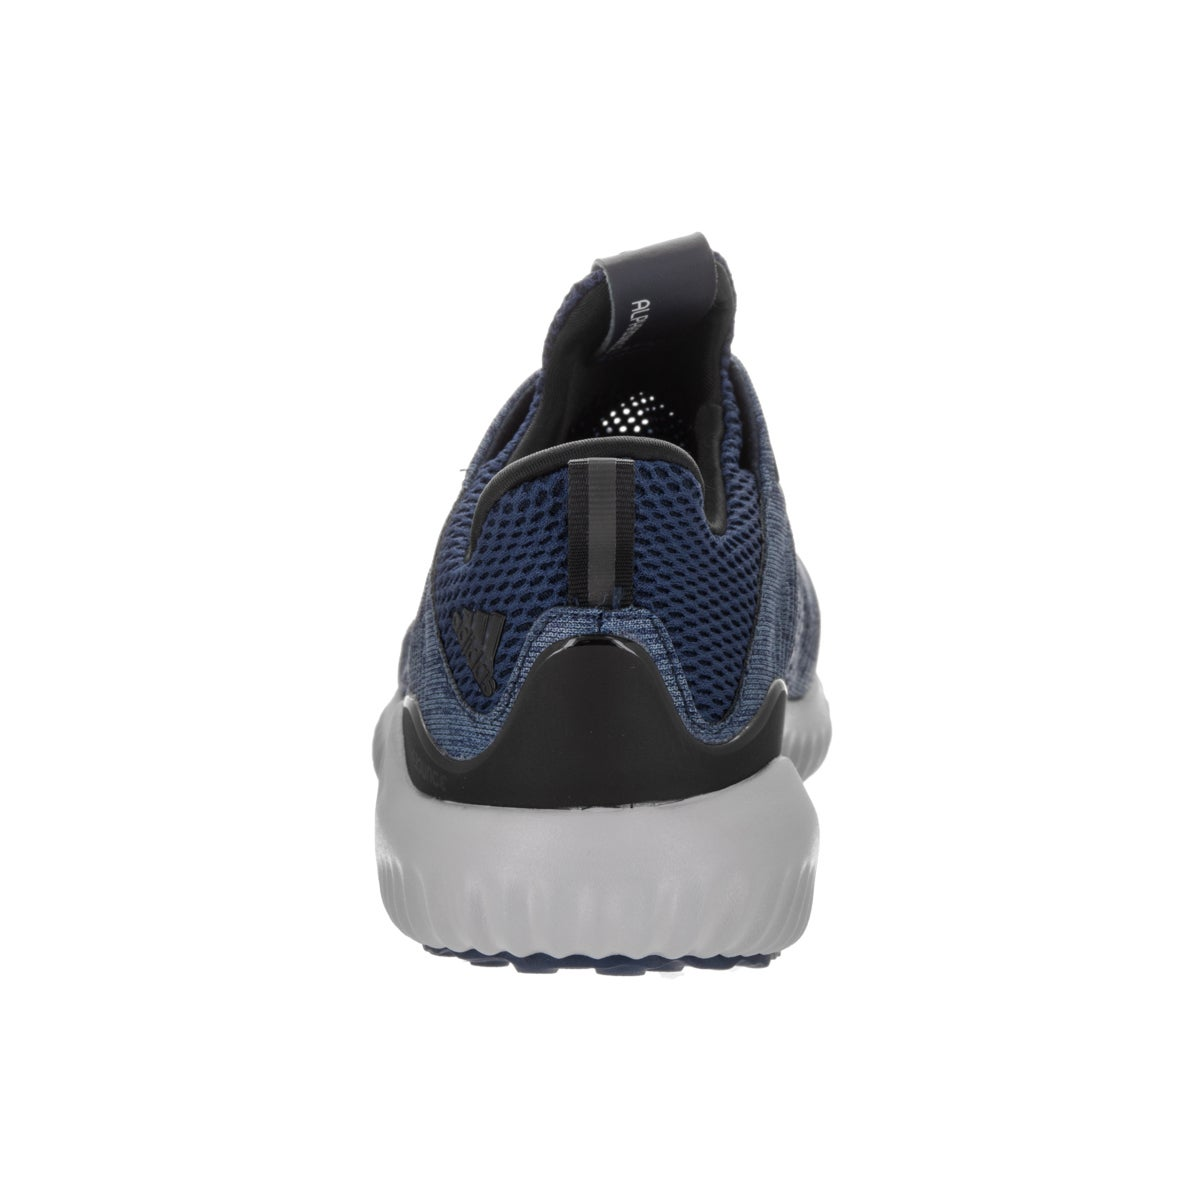 820a30158 Shop Adidas Women s Alphabounce EM Blue Synthetic Leather Running Shoes -  Free Shipping Today - Overstock - 13934262